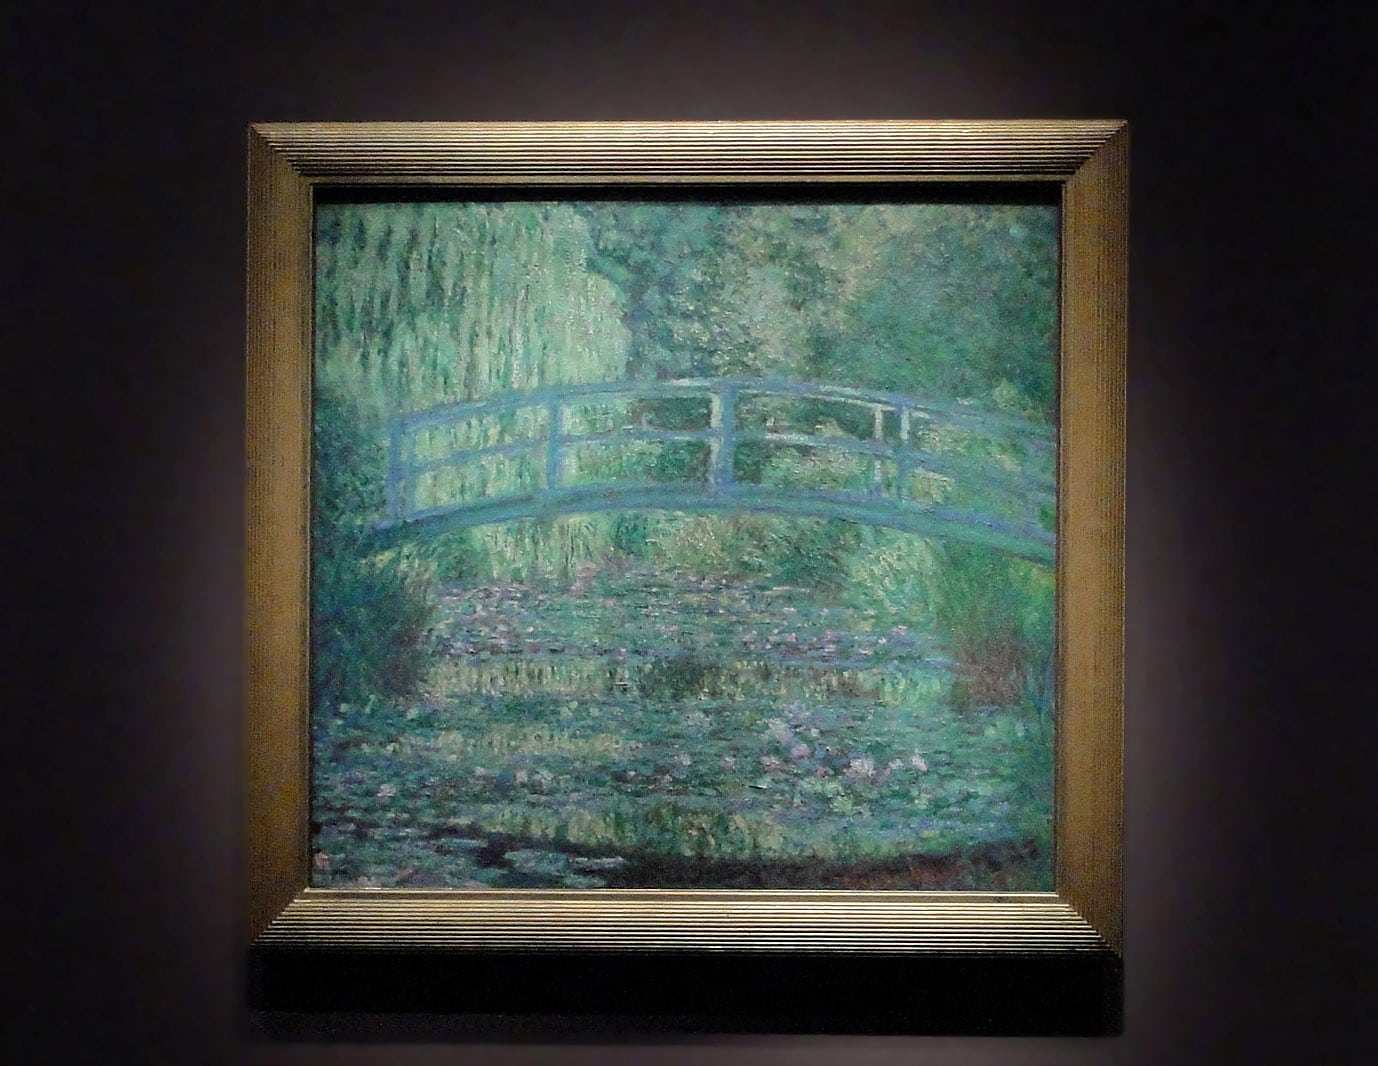 Claude Monet Lily pond green harmony Musée d'Orsay Paris